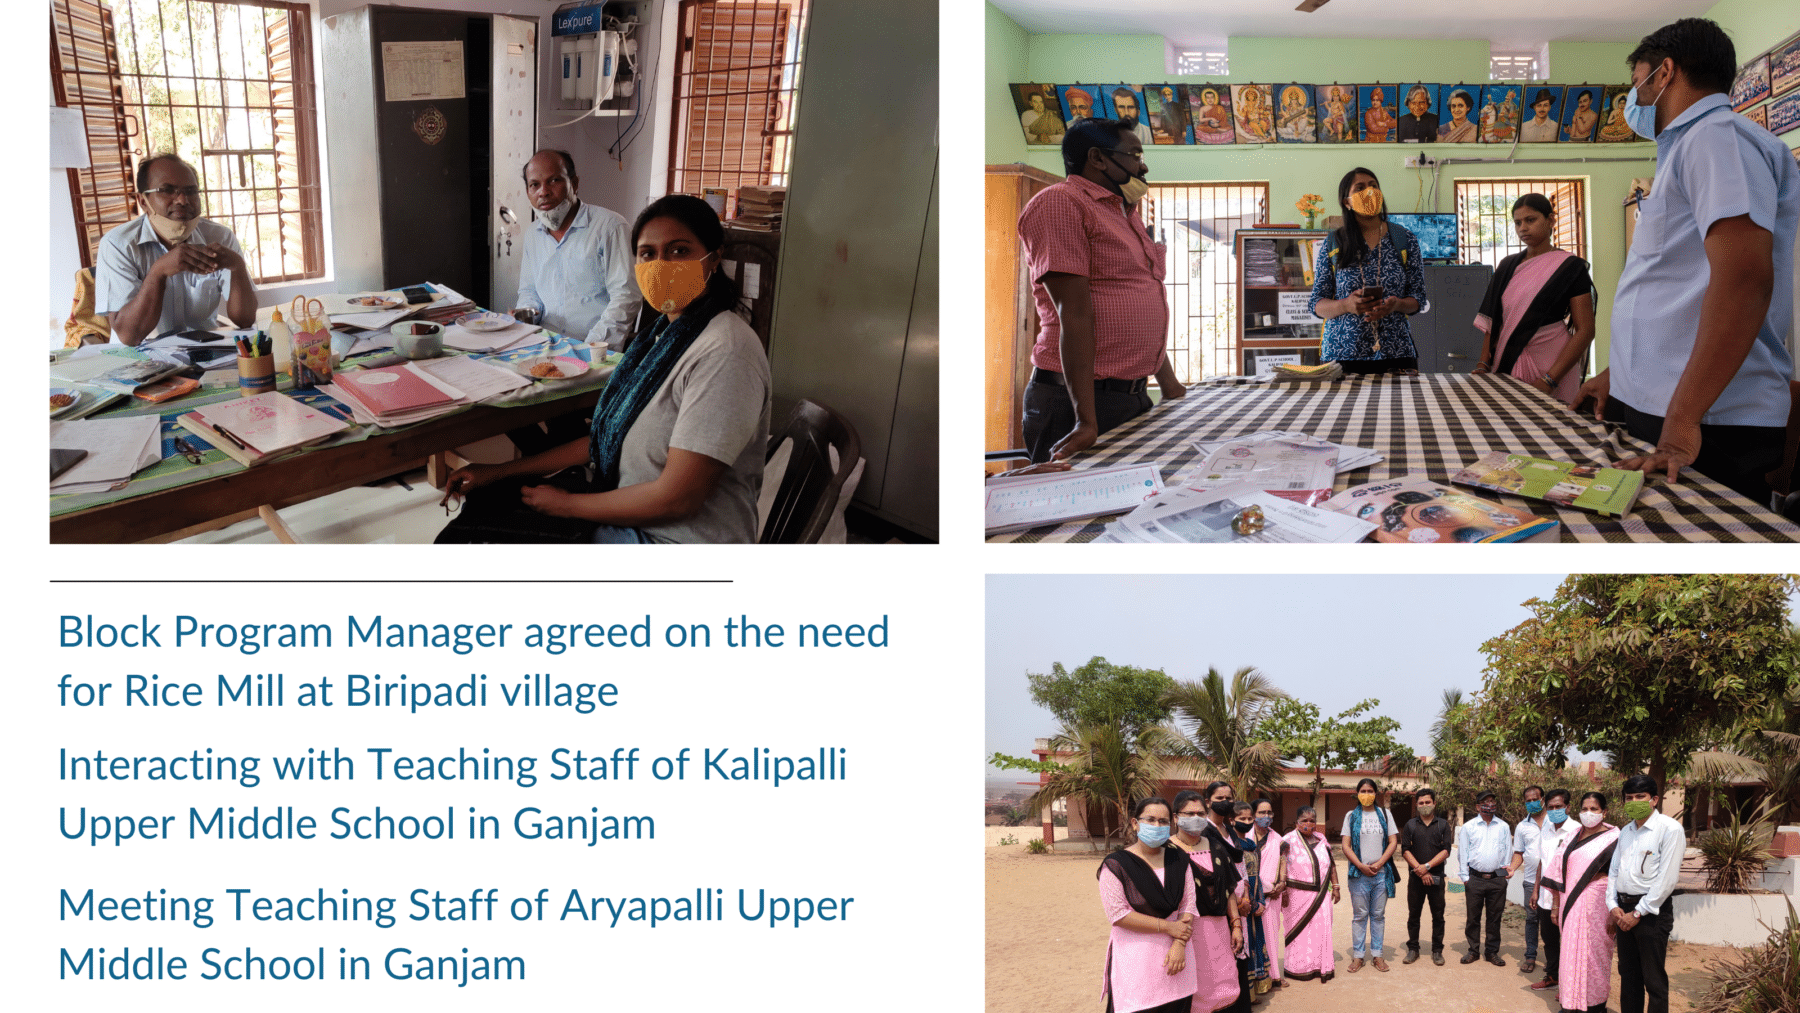 Block Program Manager agreed to the need for Rice Mill at Biripadi village. Interacting with Teaching Staff of Kalipalli Upper Middle School in Ganjam. Meeting Teaching Staff at Aryapalli Upper Middle School in Ganjam.